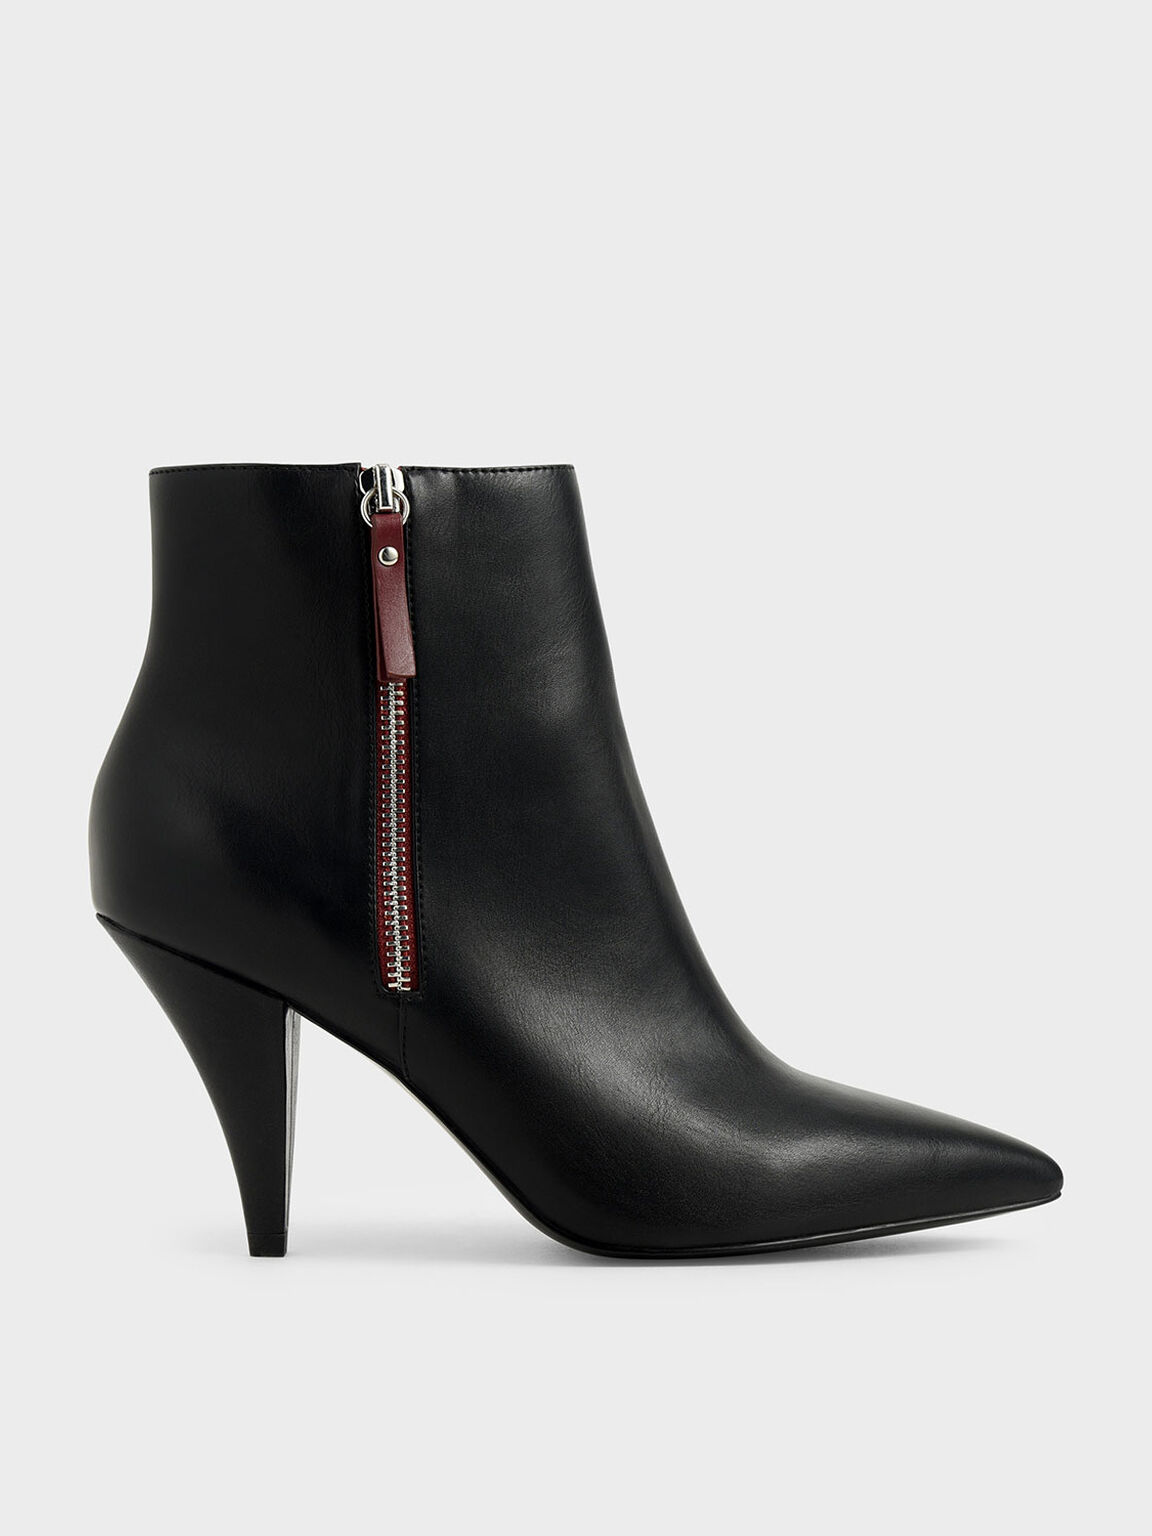 Double Zip Pointed Toe Ankle Boots, Black, hi-res